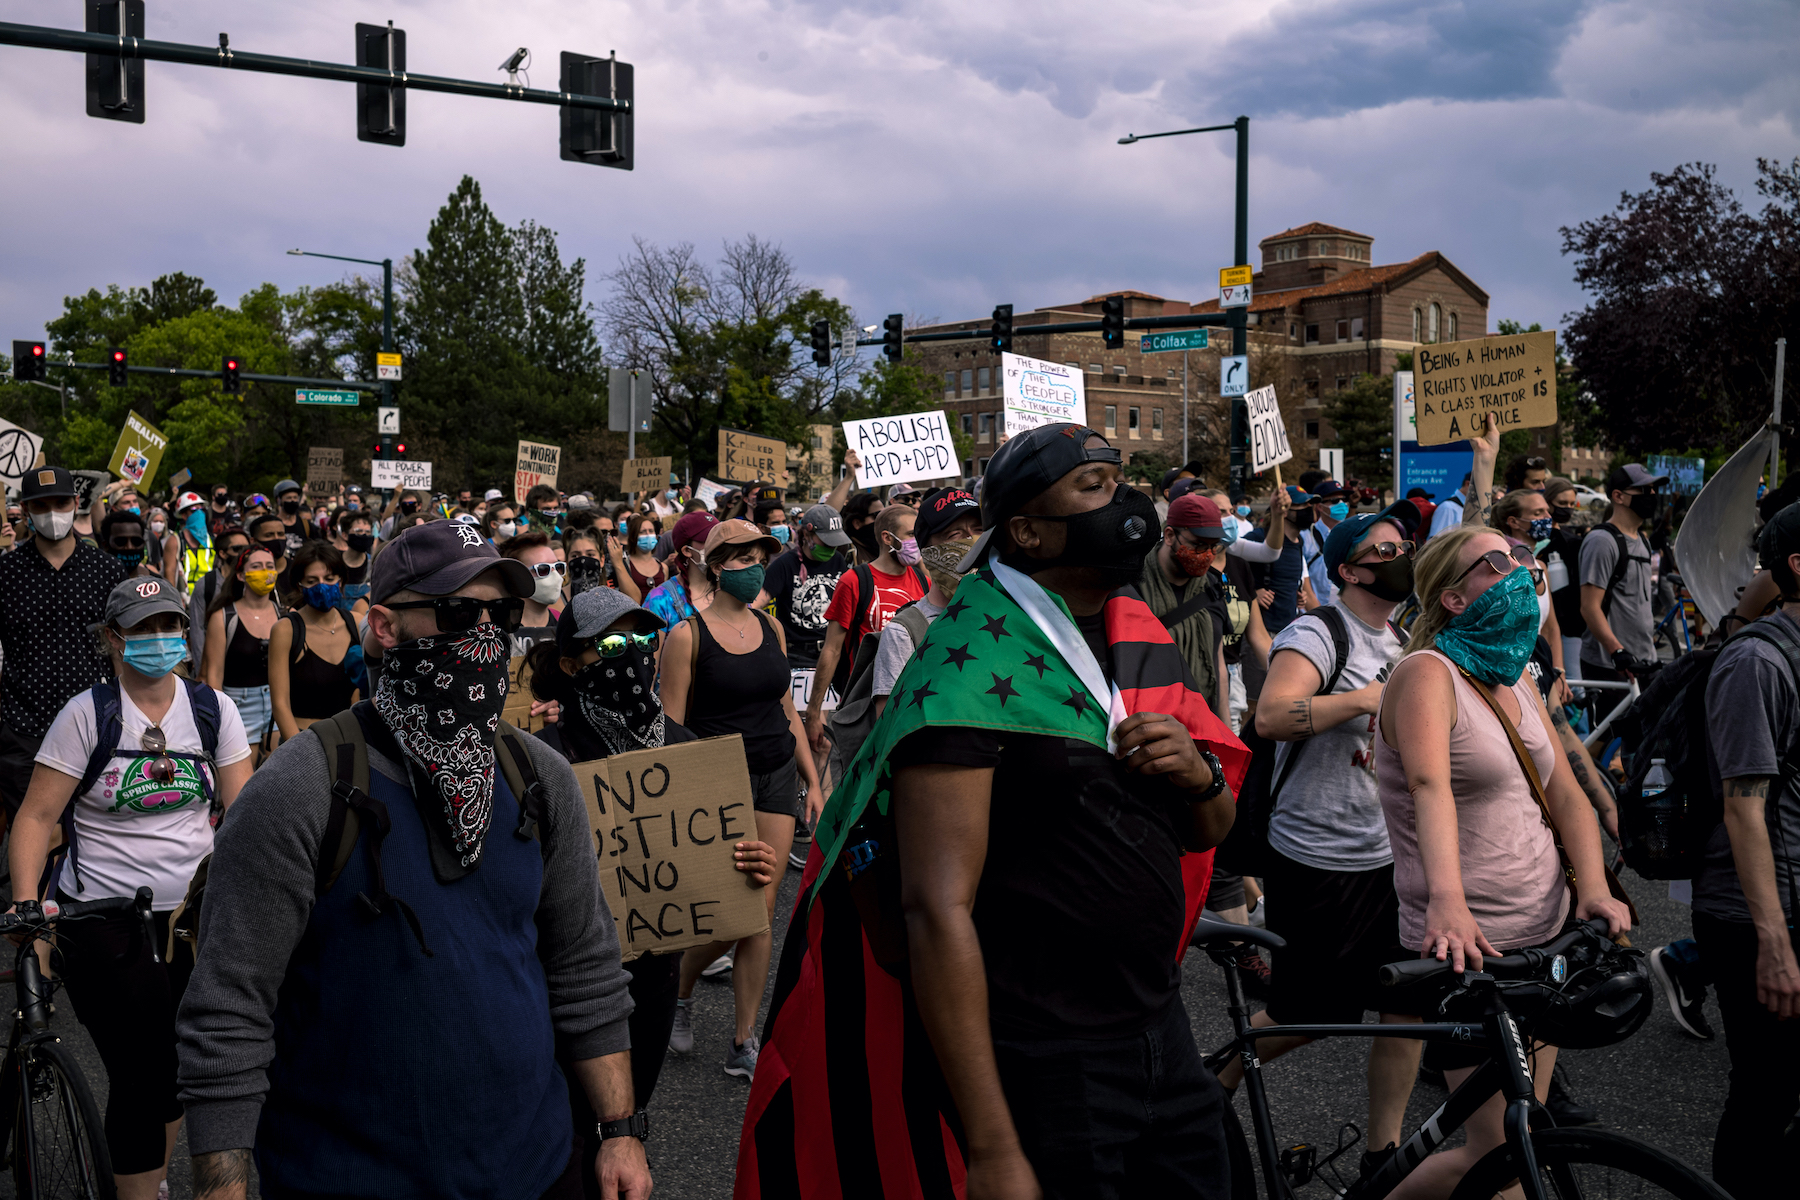 State lawmaker describes BLM protest as anti-government